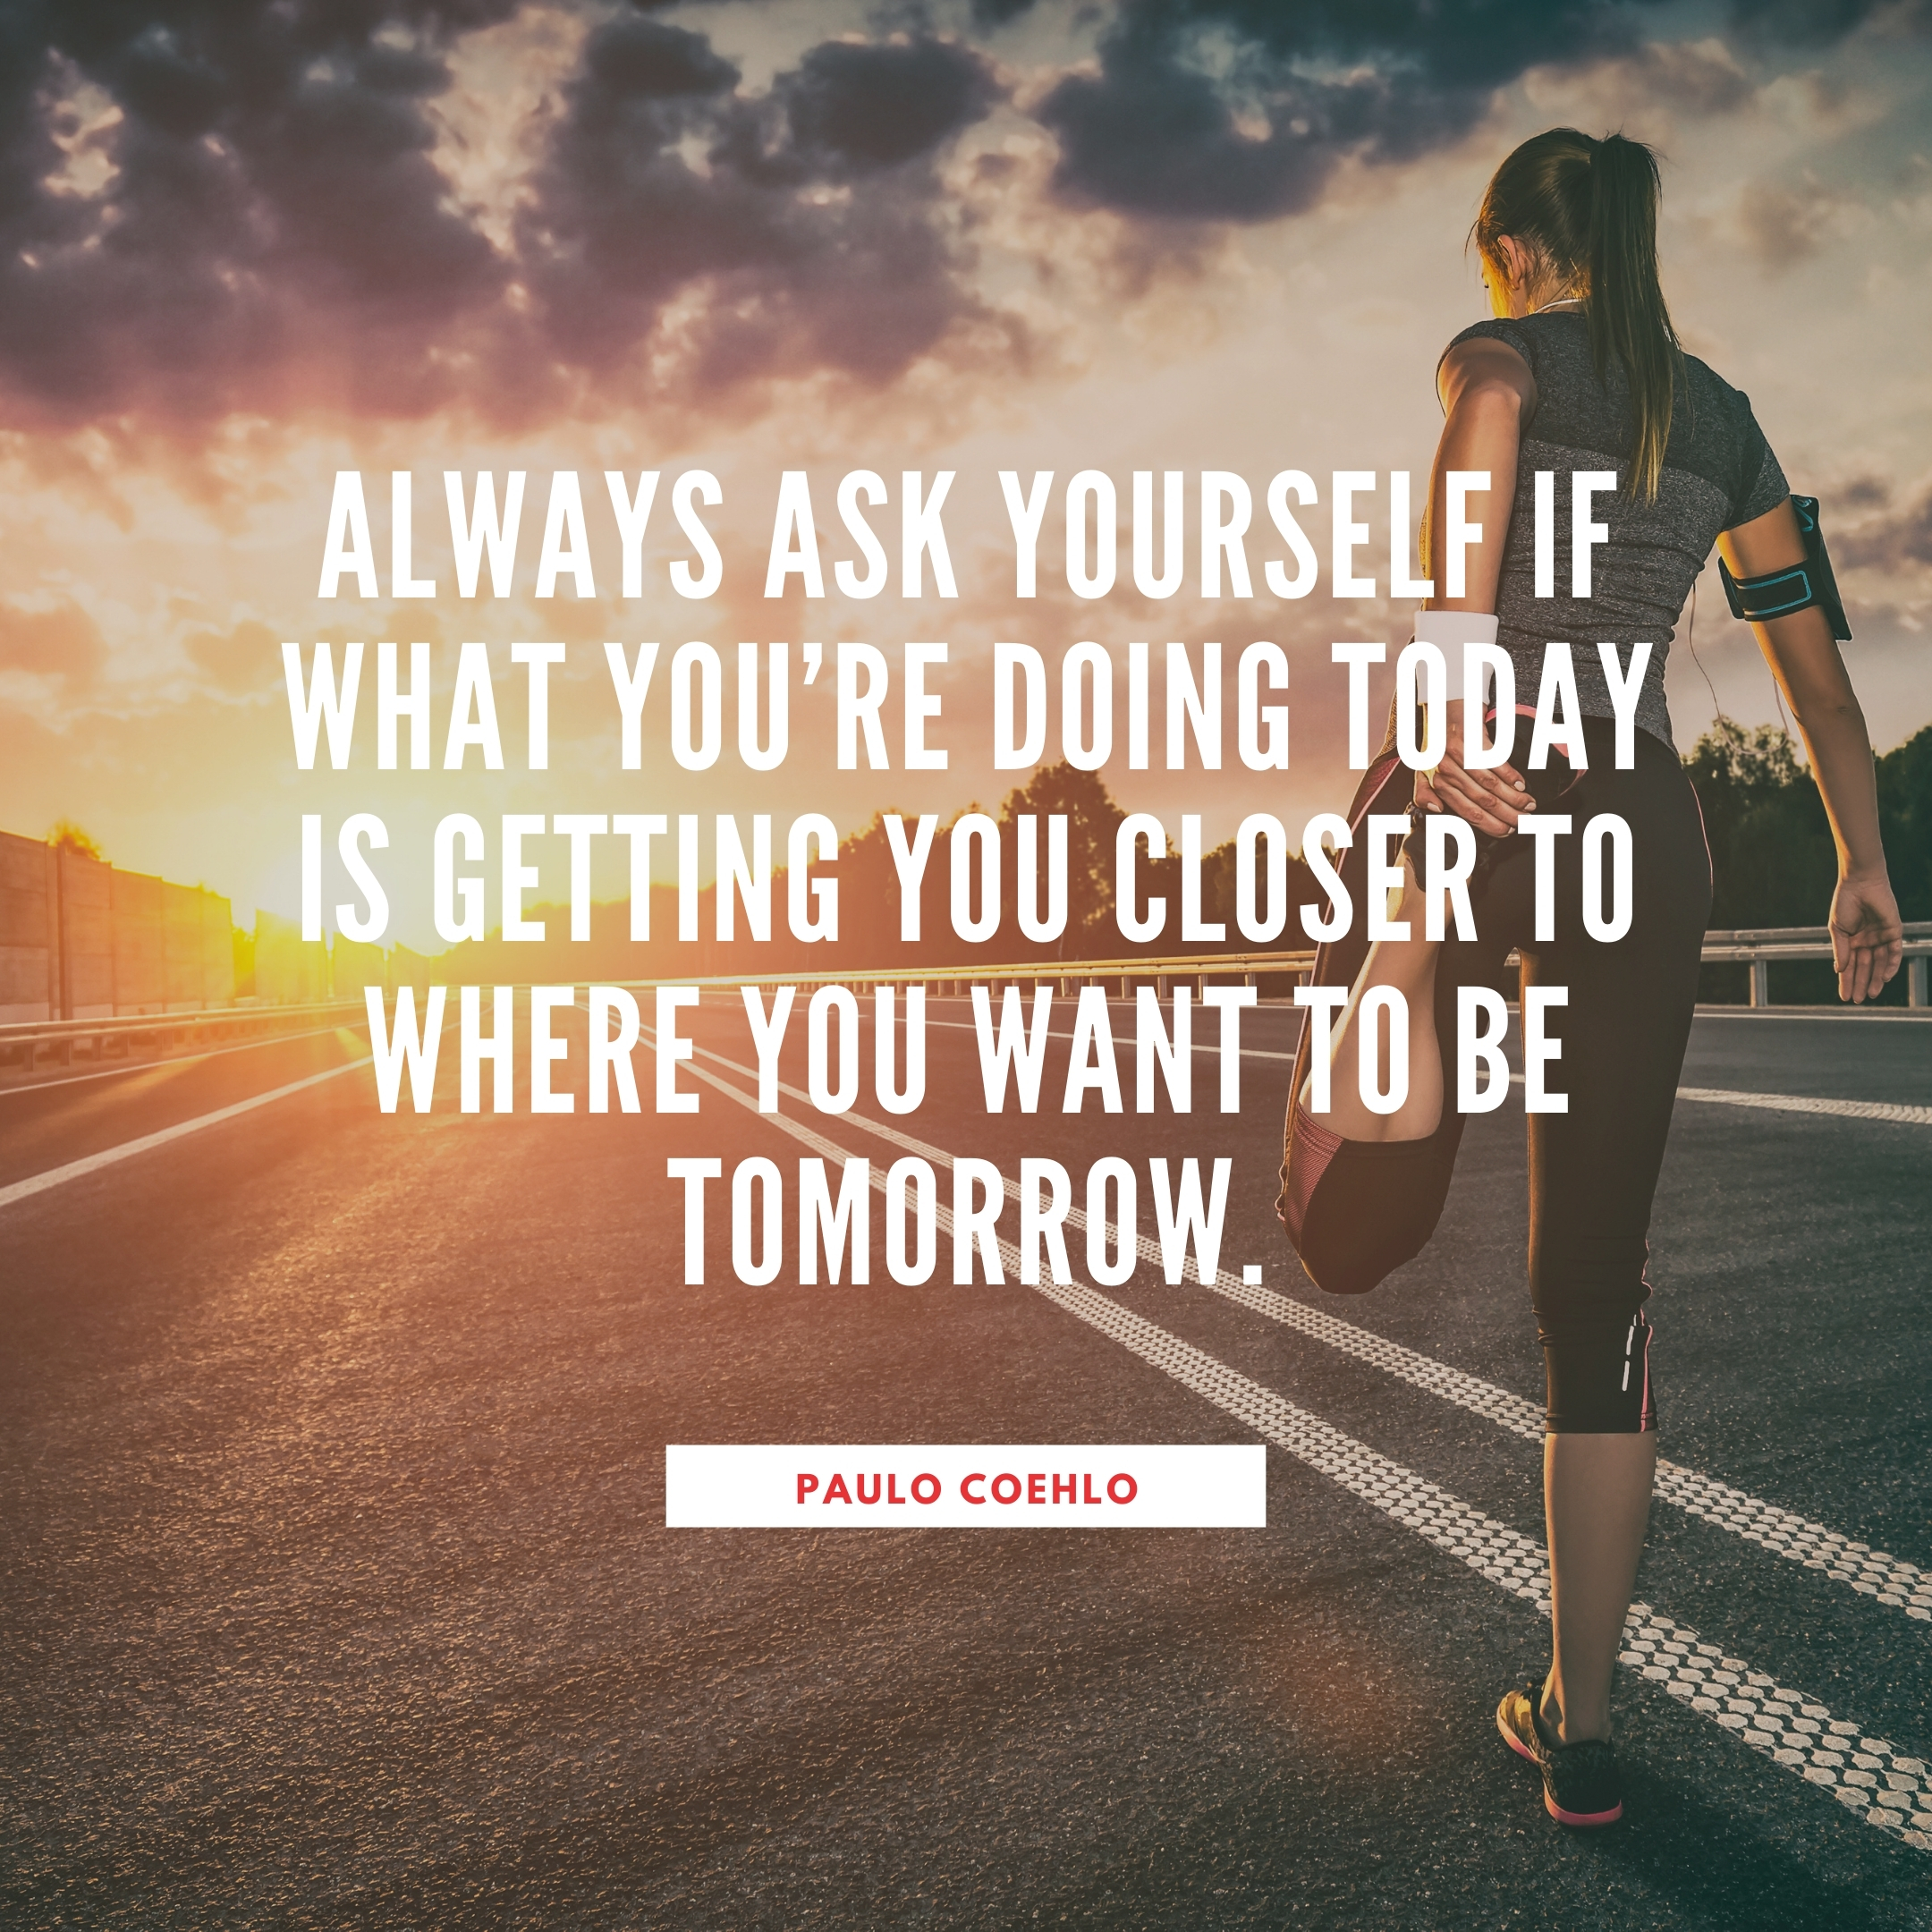 paulo coehlo quote   daily motivation